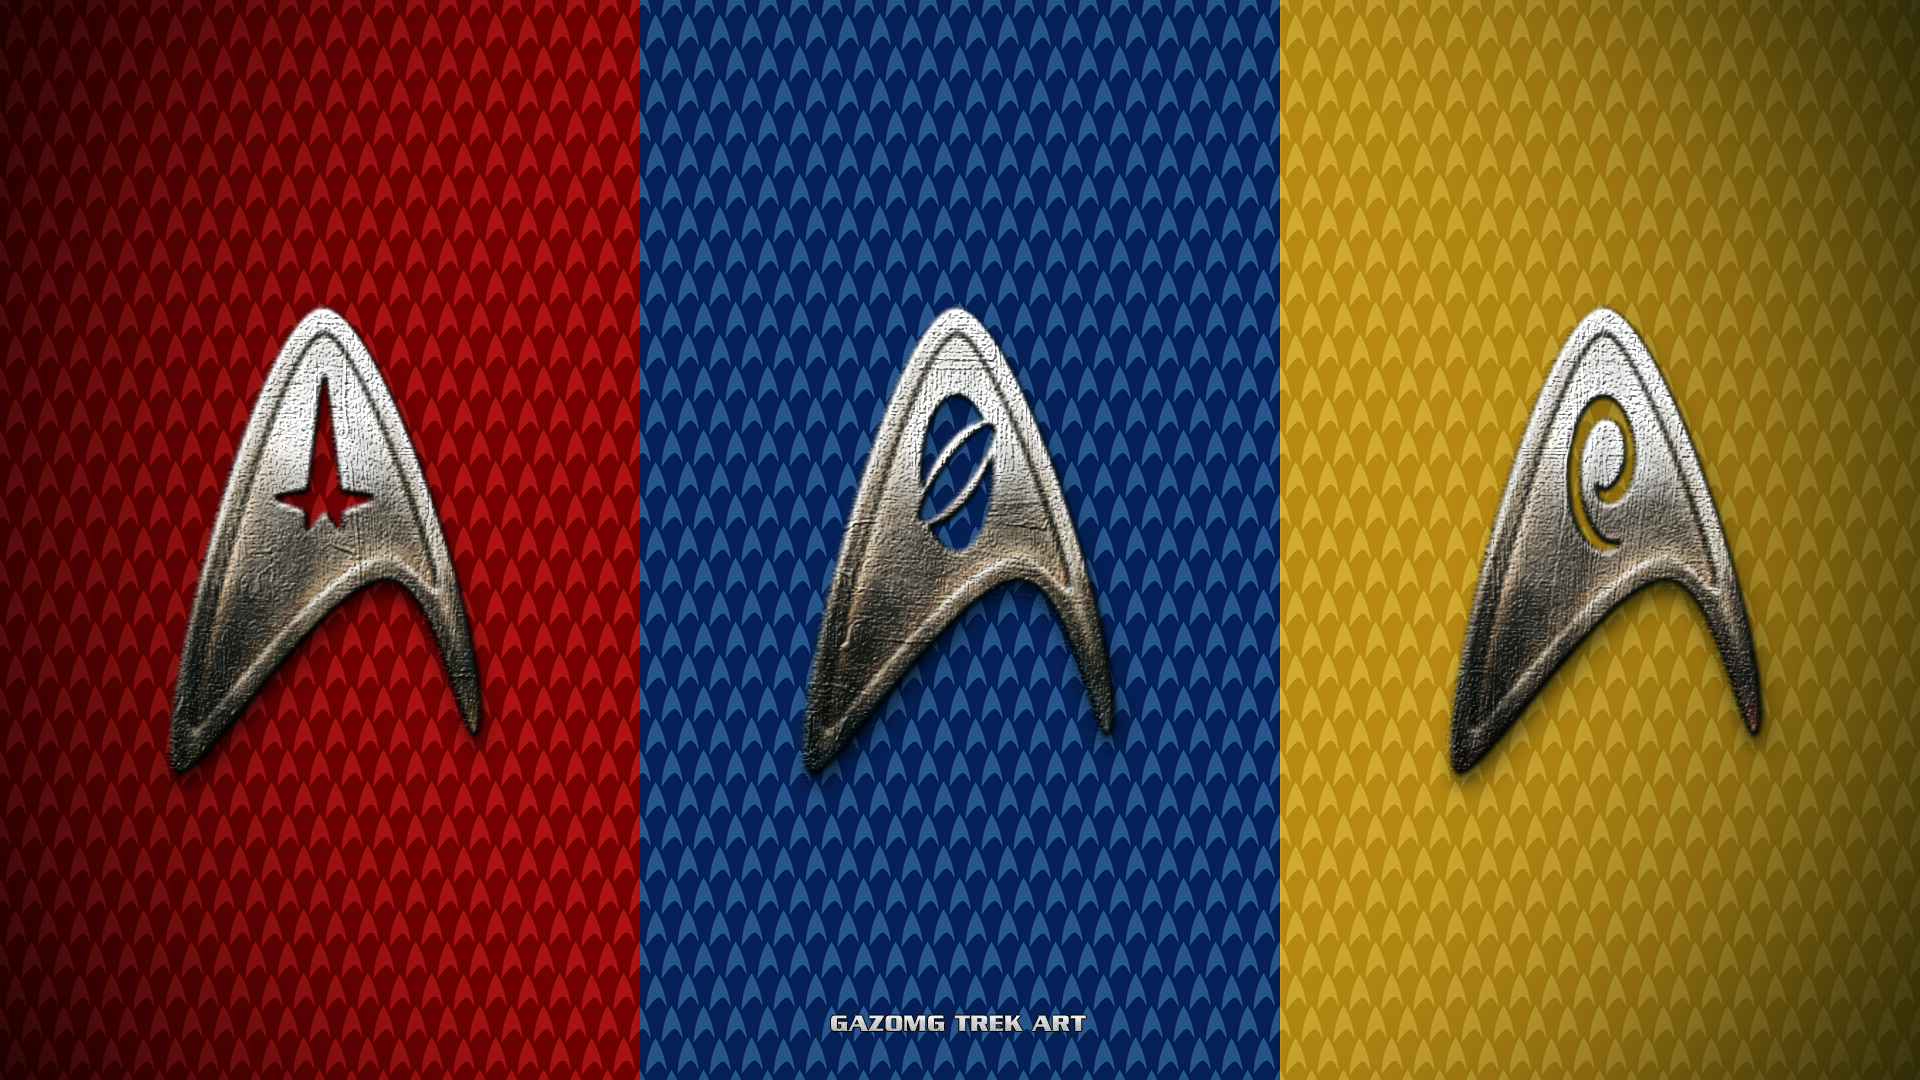 Free Download Star Trek Insignia Wallpaper By Gazomg